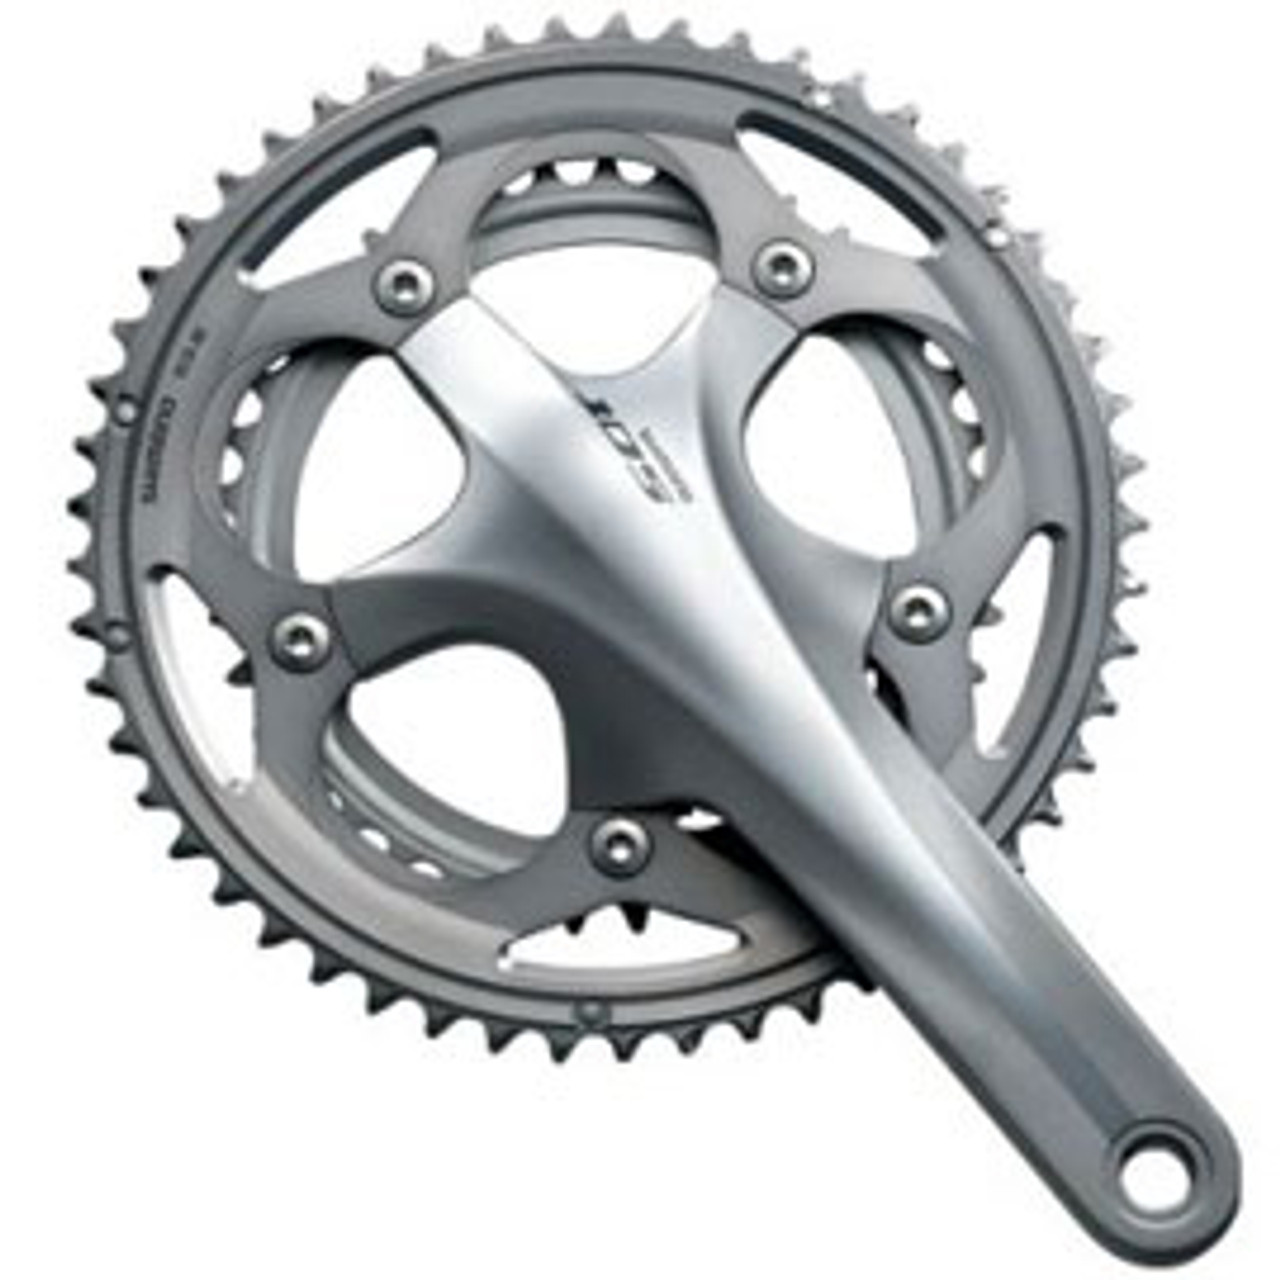 Shimano 105 5700 10 Speed Double Chainset Silver 172.5mm 39/53